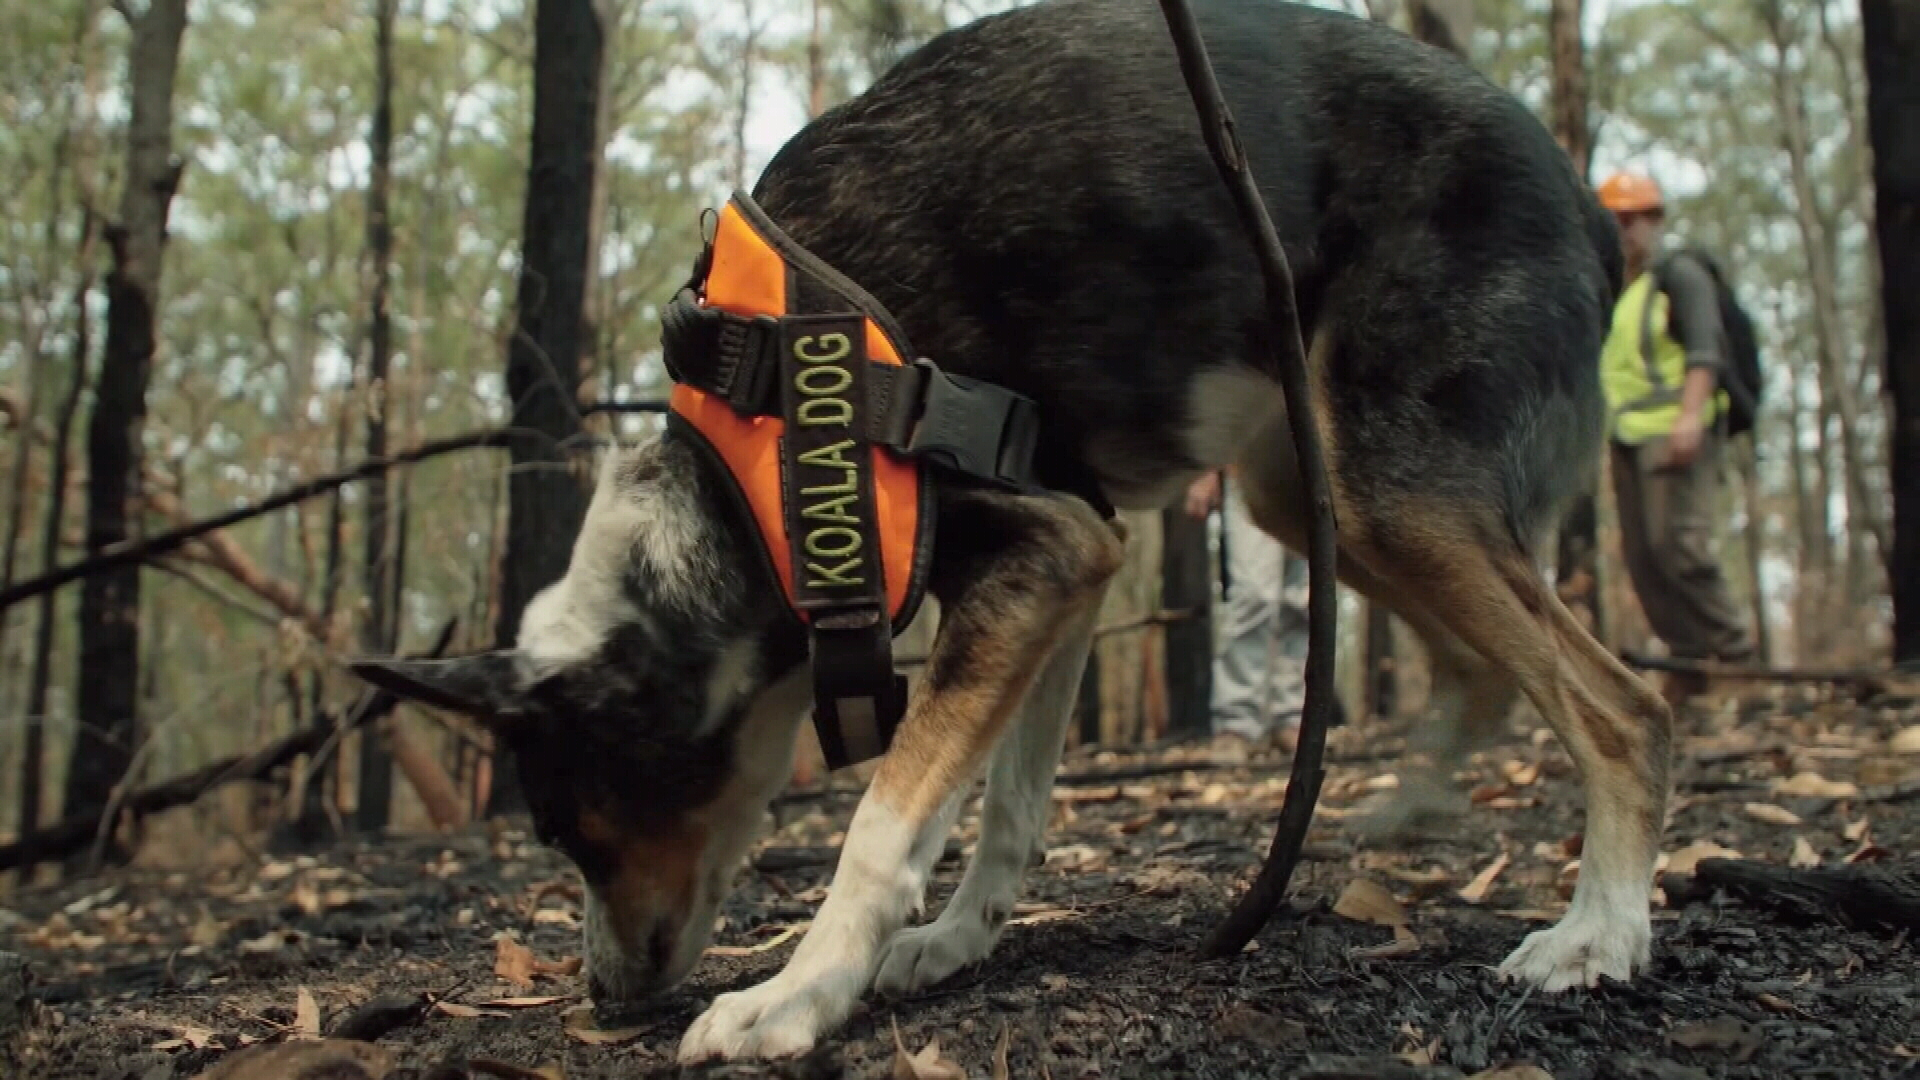 The pup is a specially trained sniffer dog who can track the koalas' scents, primarily through their scat (droppings).